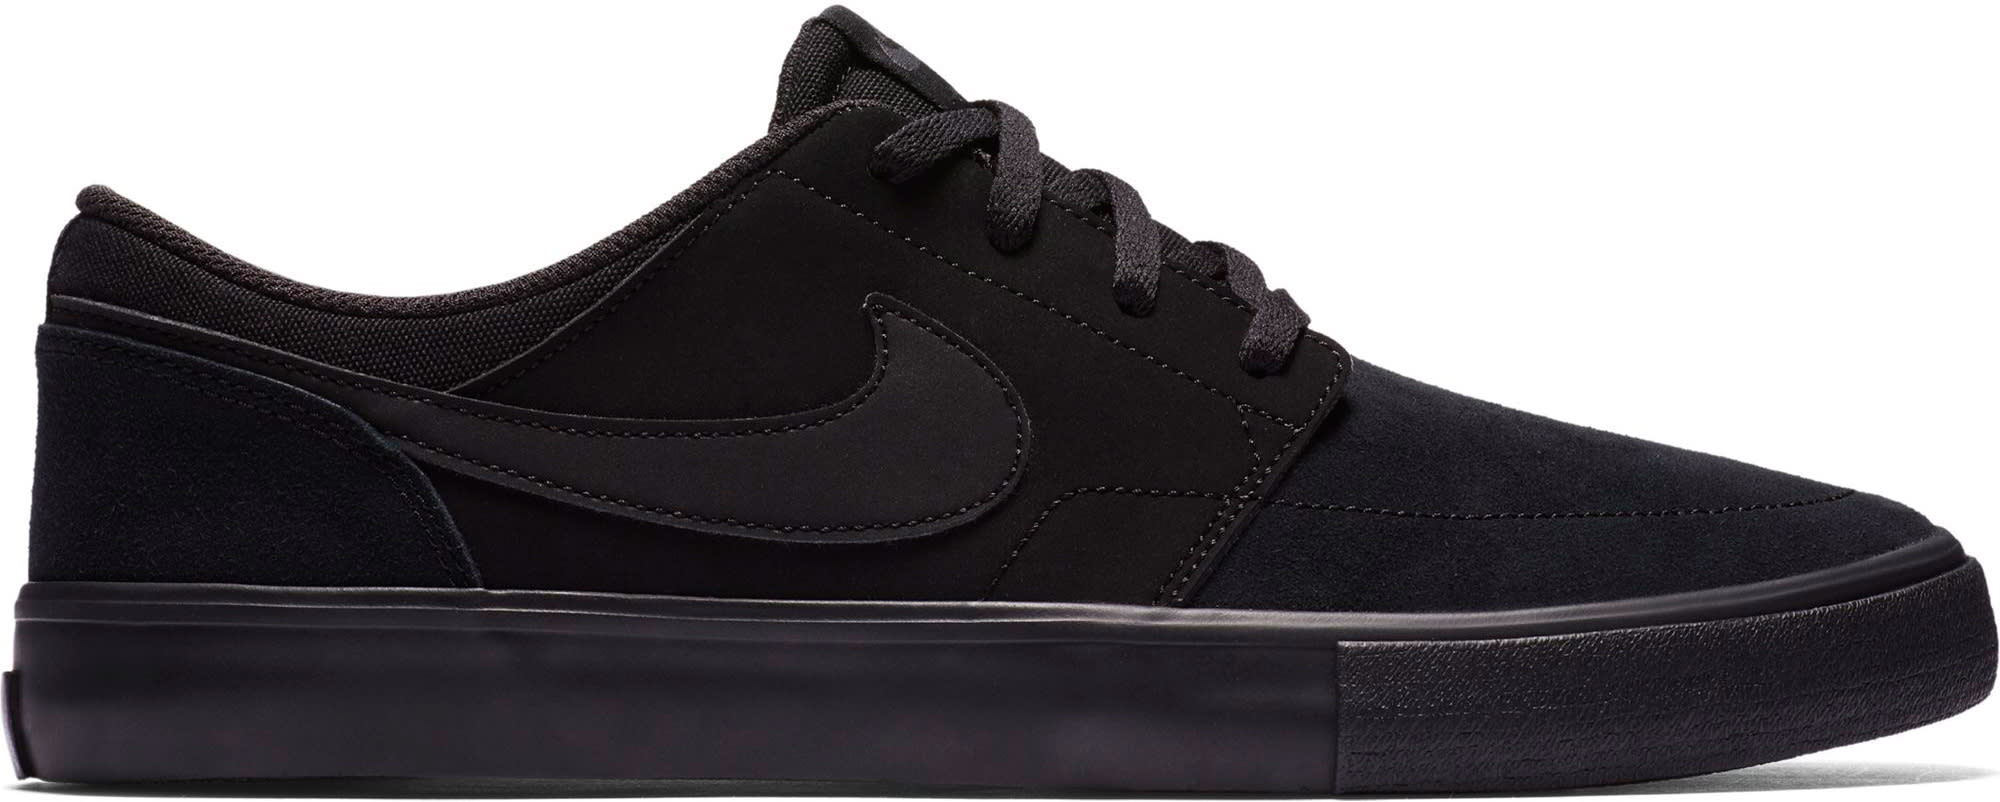 on sale nike sb portmore ii solarsoft skate shoes up to 40 off. Black Bedroom Furniture Sets. Home Design Ideas